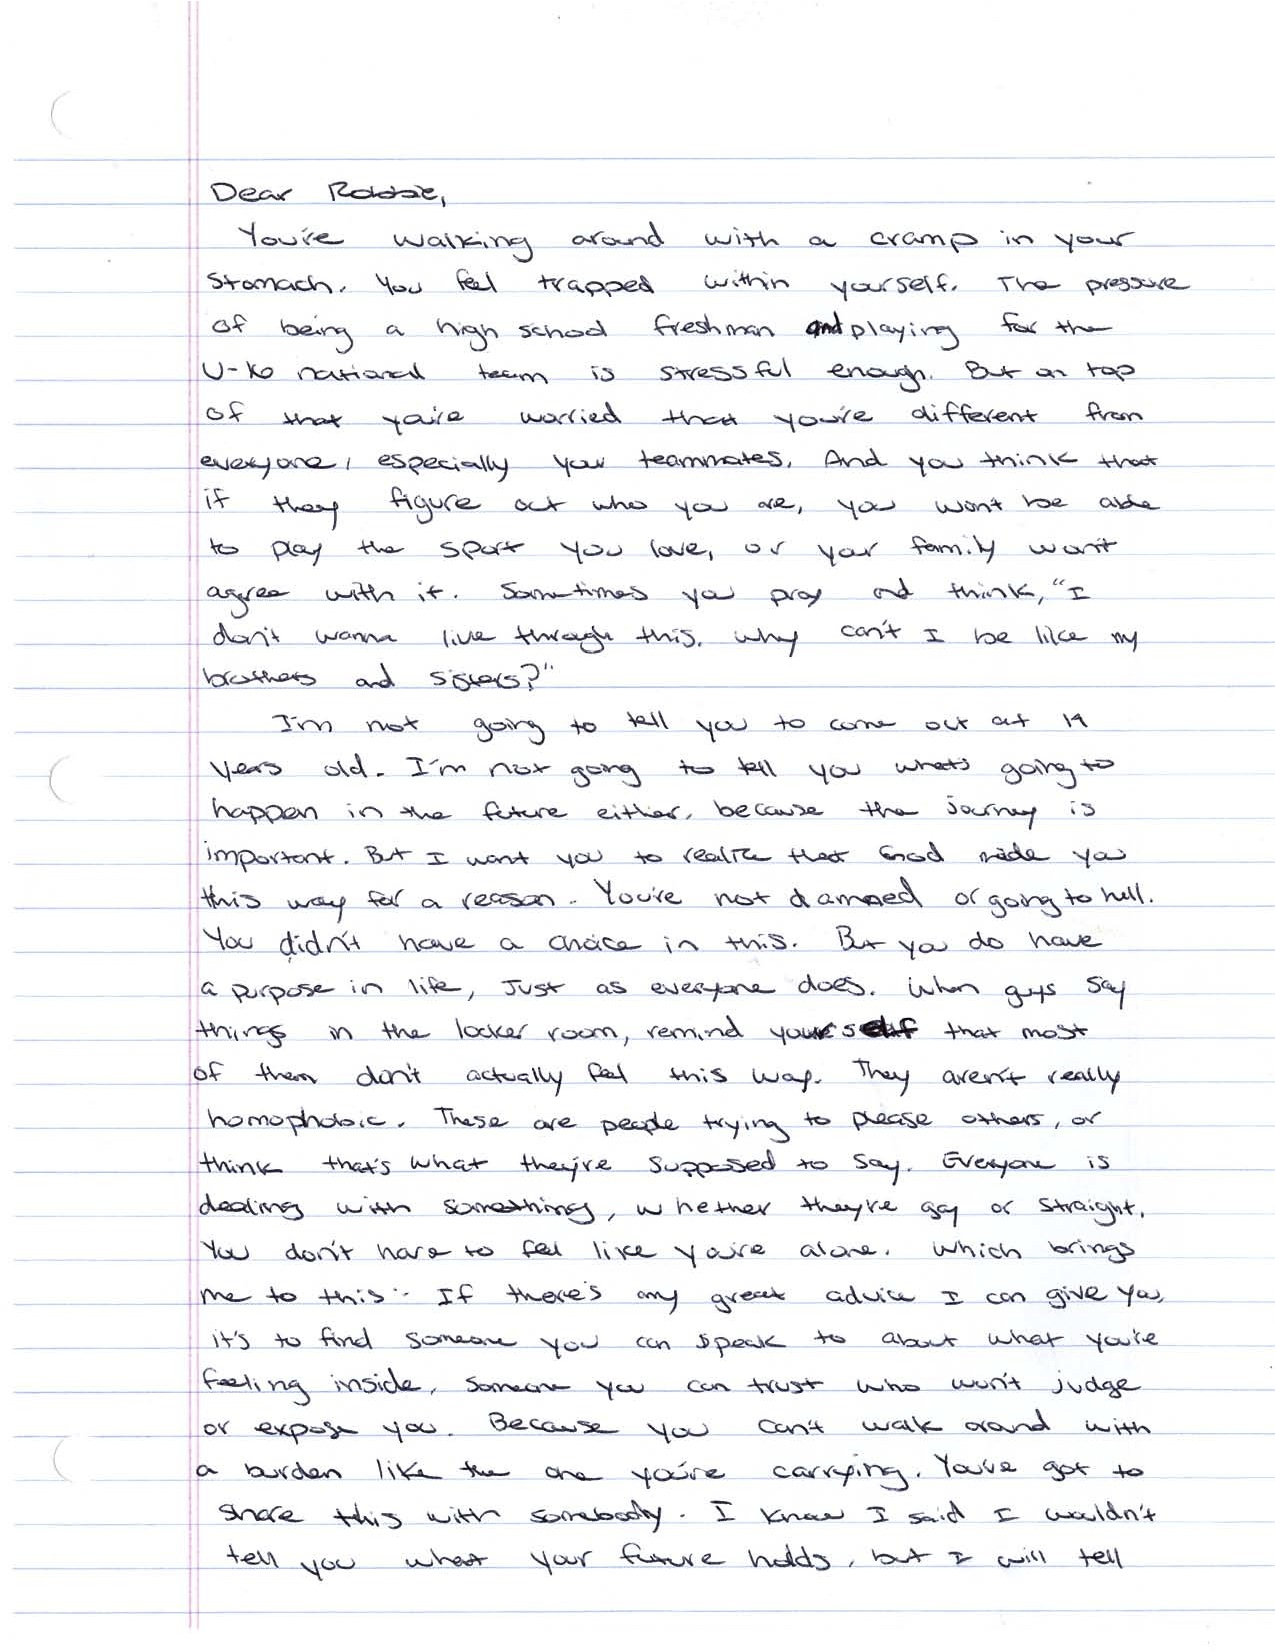 Robbie Letter1